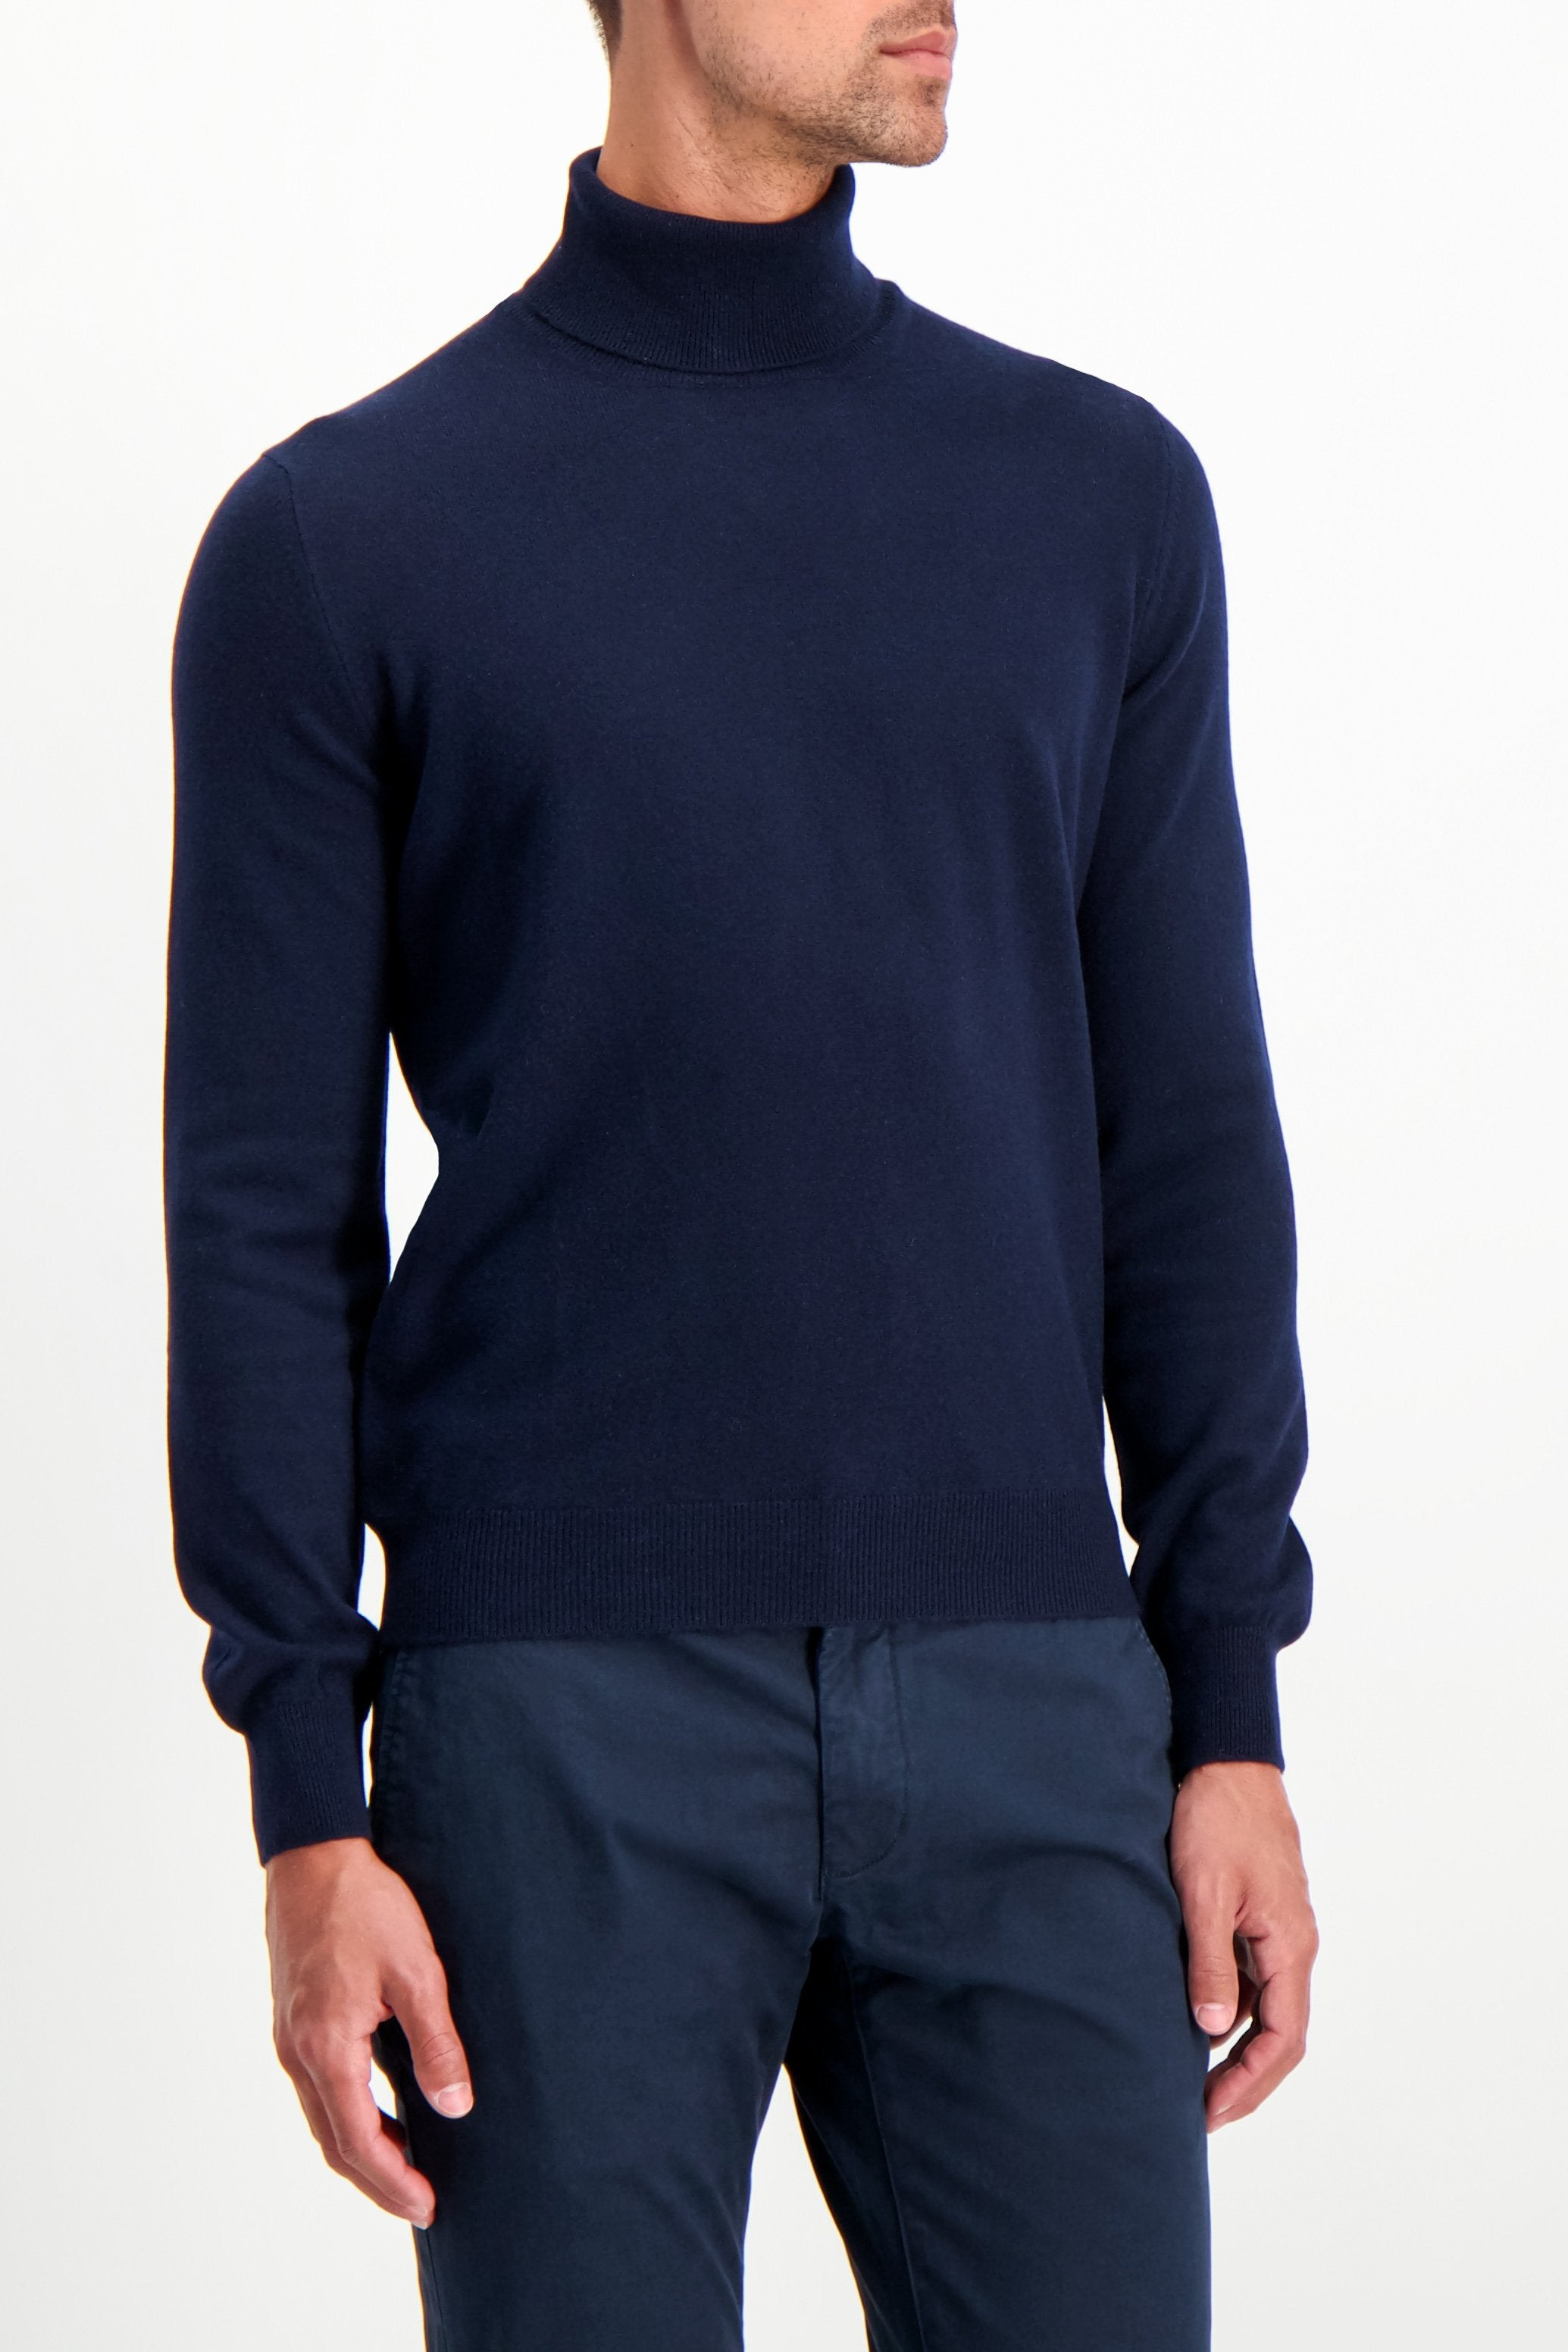 Front Crop Image Of Model Wearing Gran Sasso Turtleneck Sweater Navy